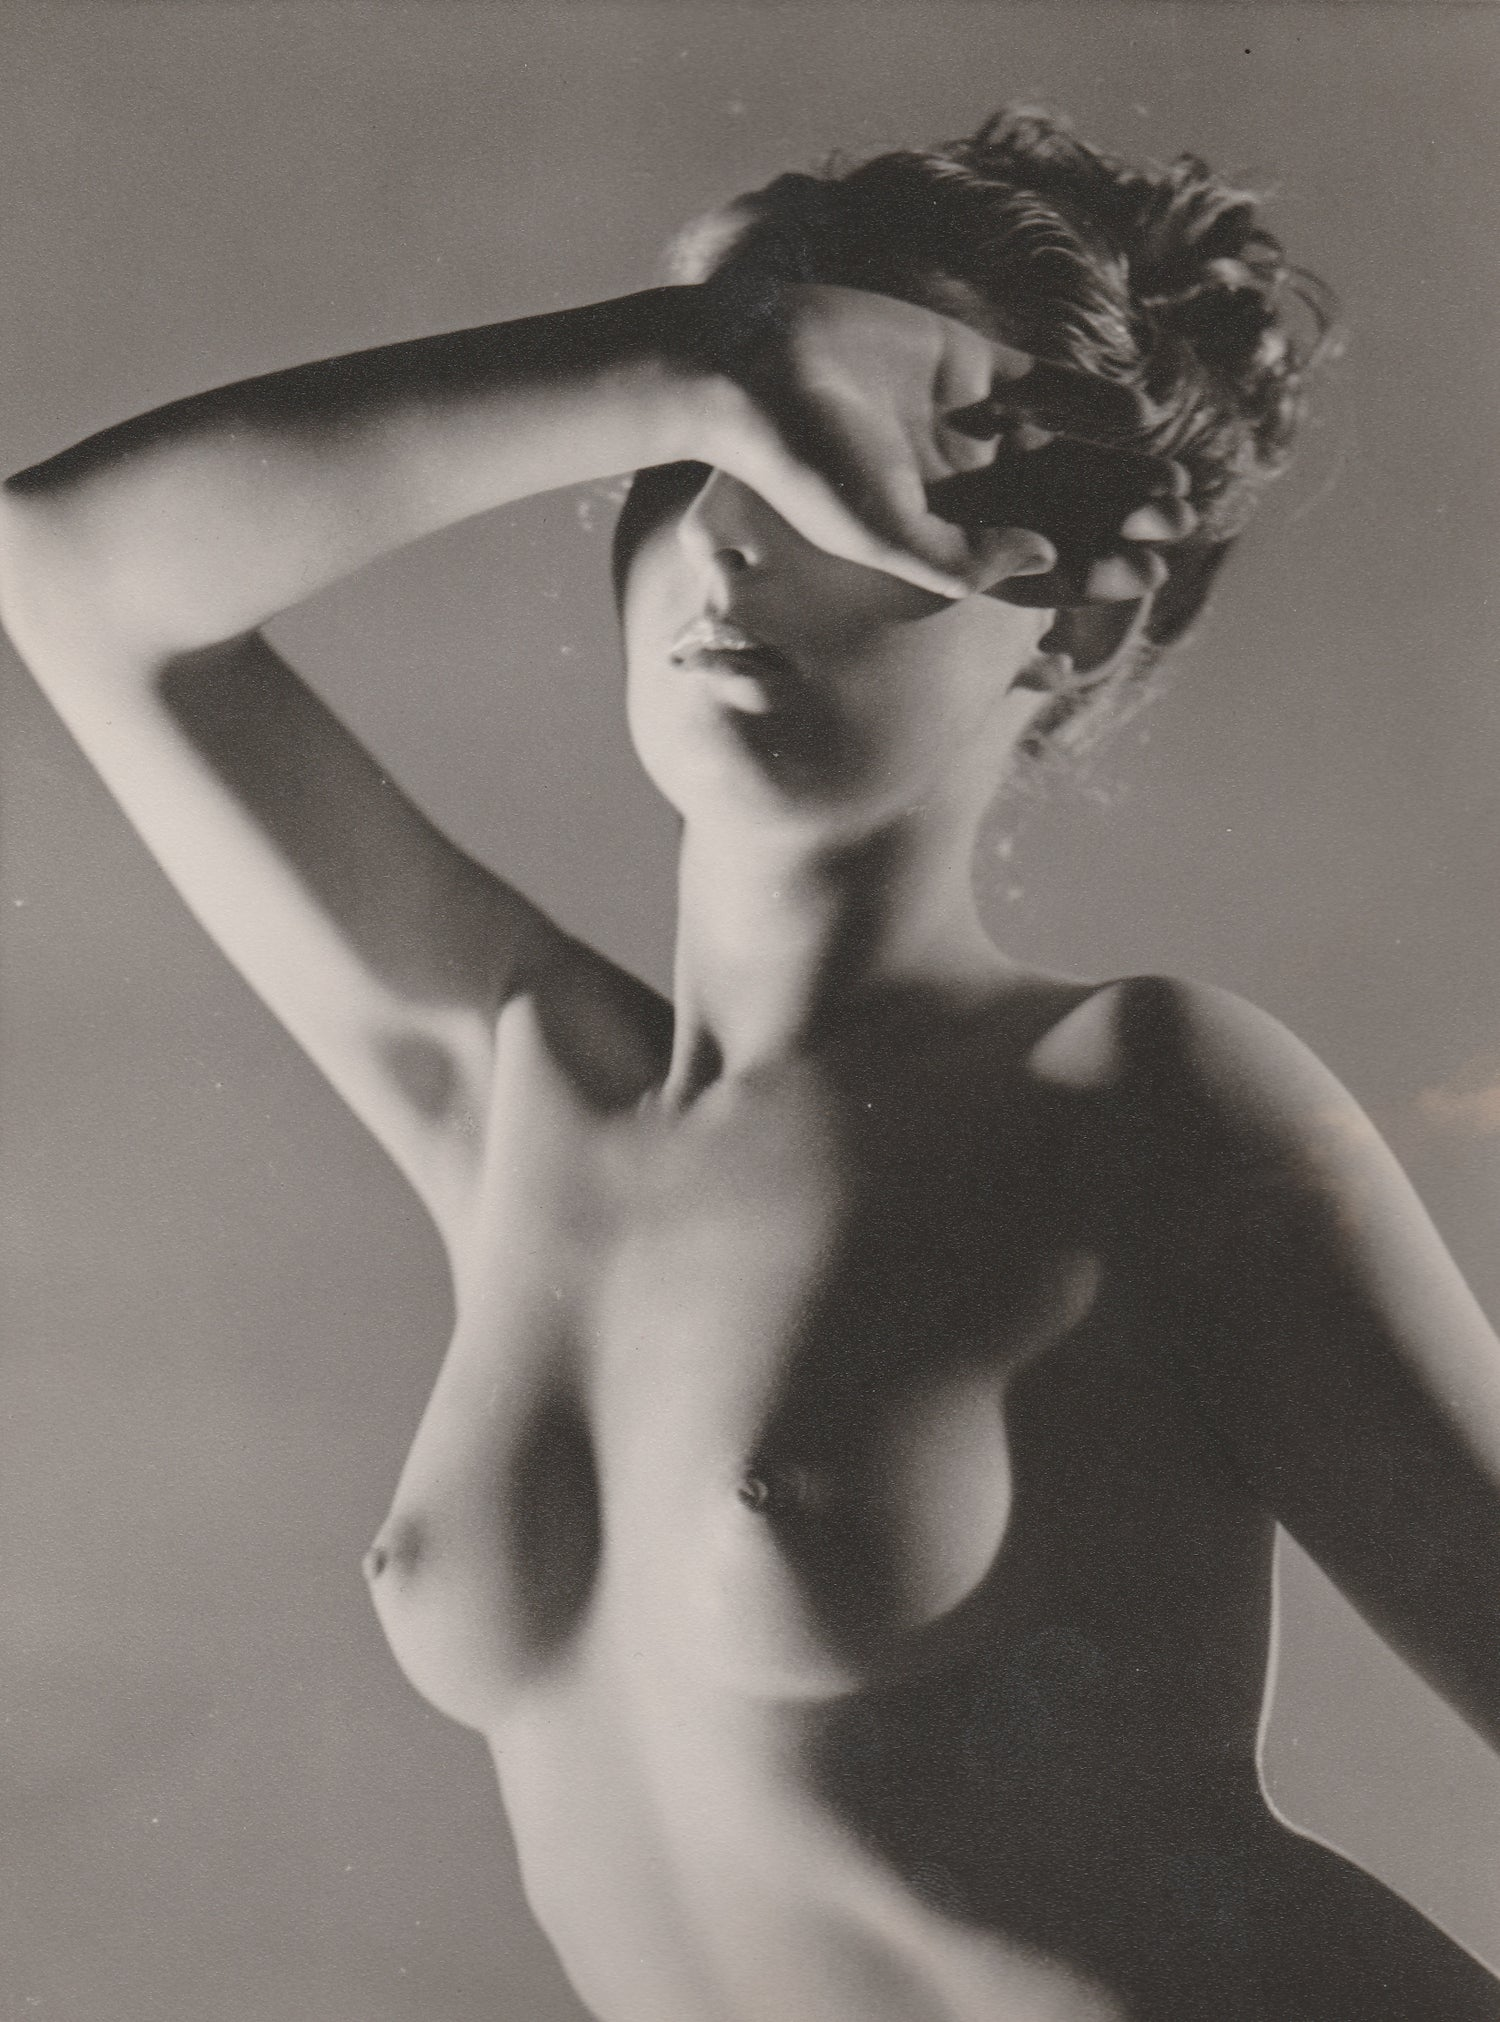 Image of Everard: woman posing like Phryné, UK ca. 1938